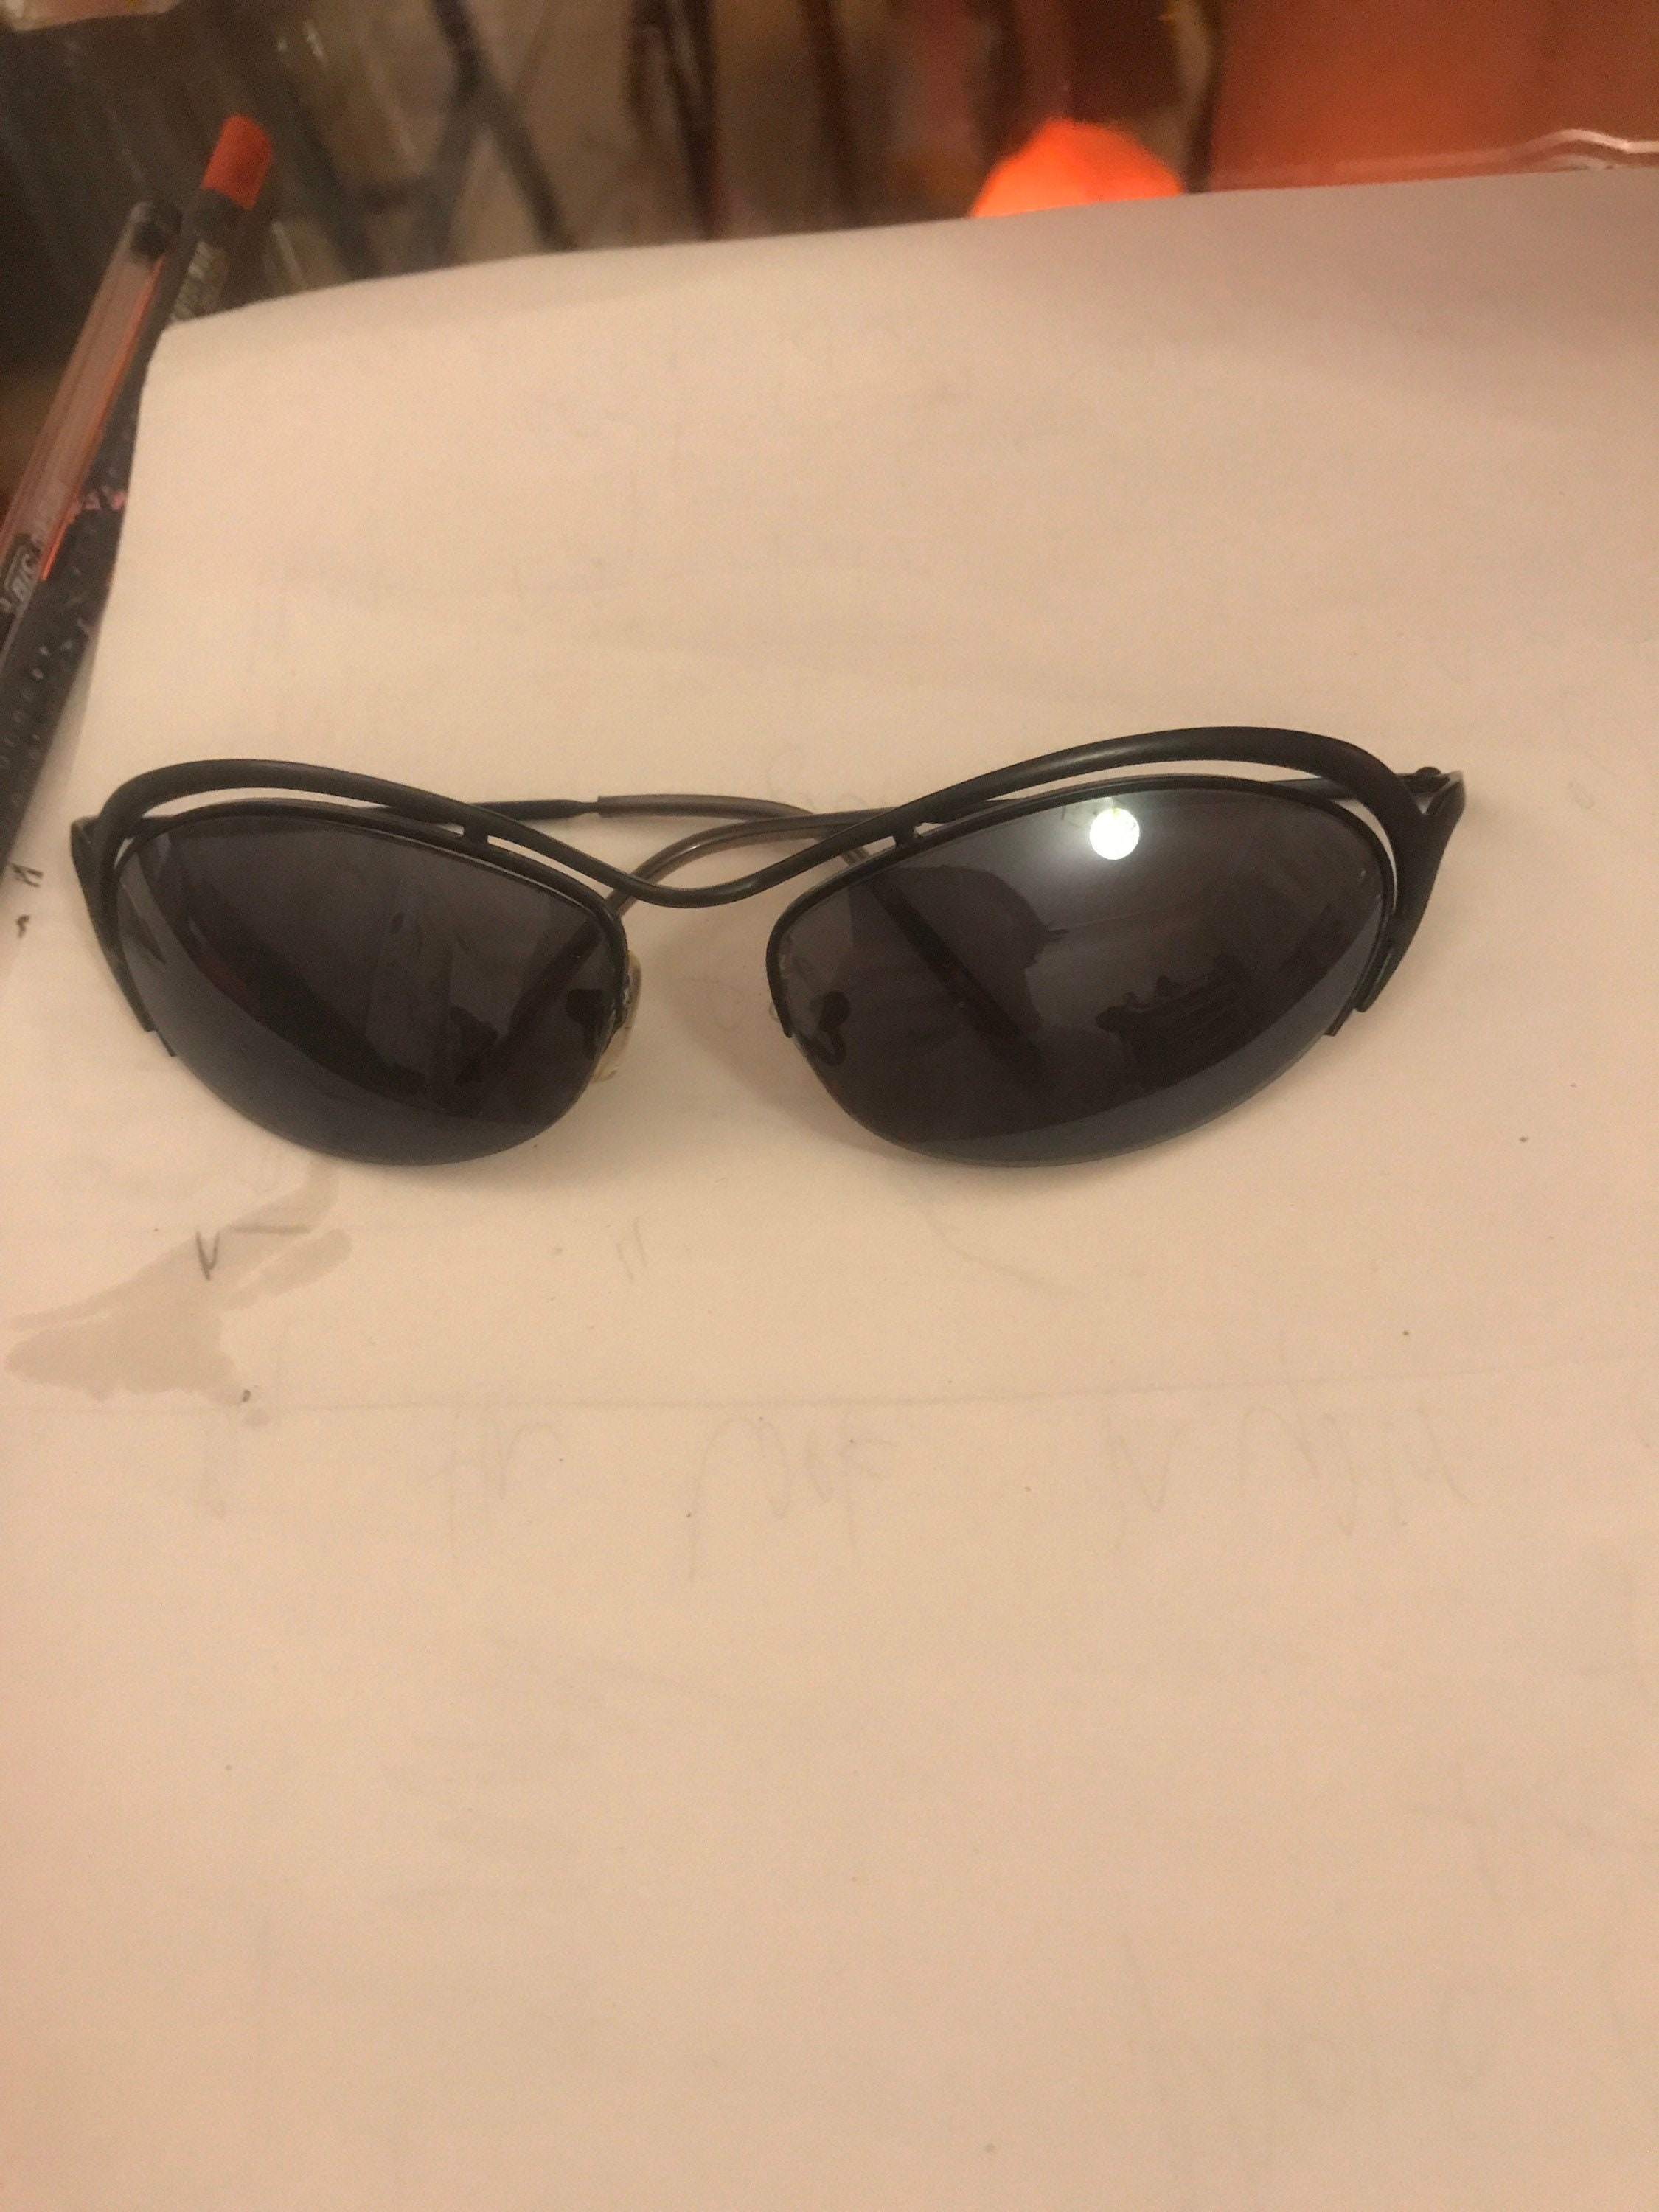 Black Metal frame oval sunglasses vtg